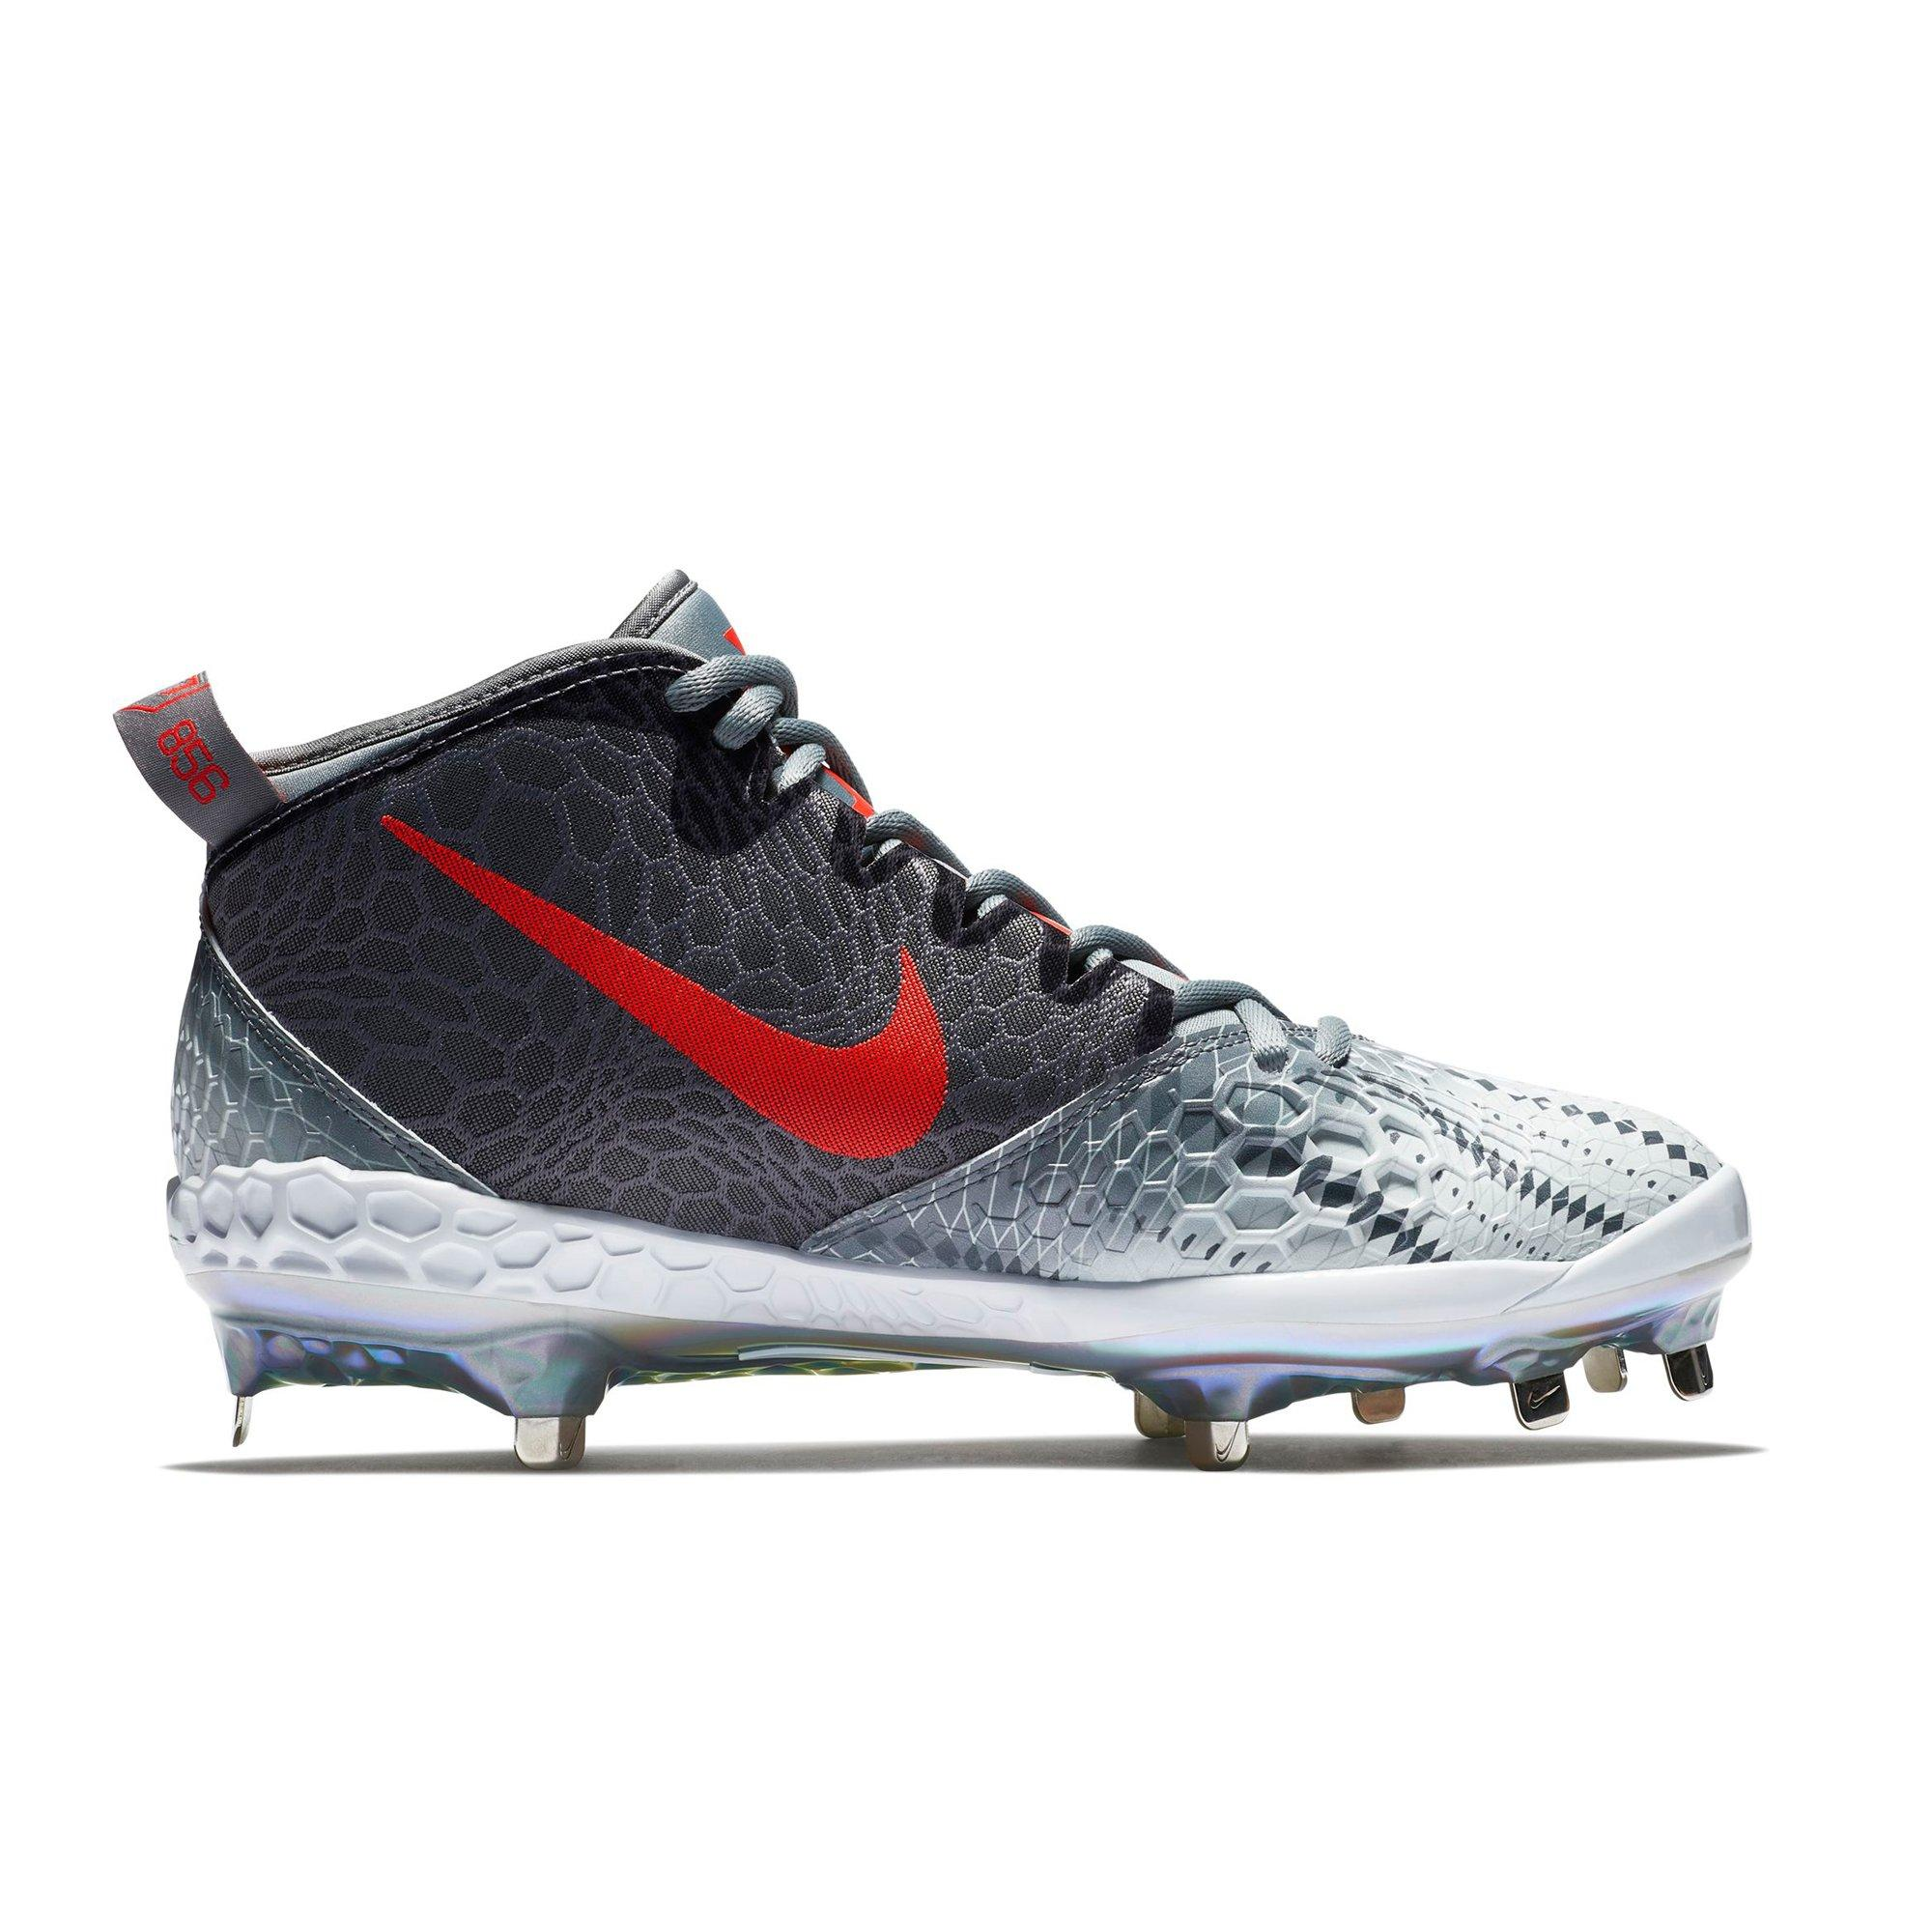 nike huarache baseball cleats 2018 800061b19